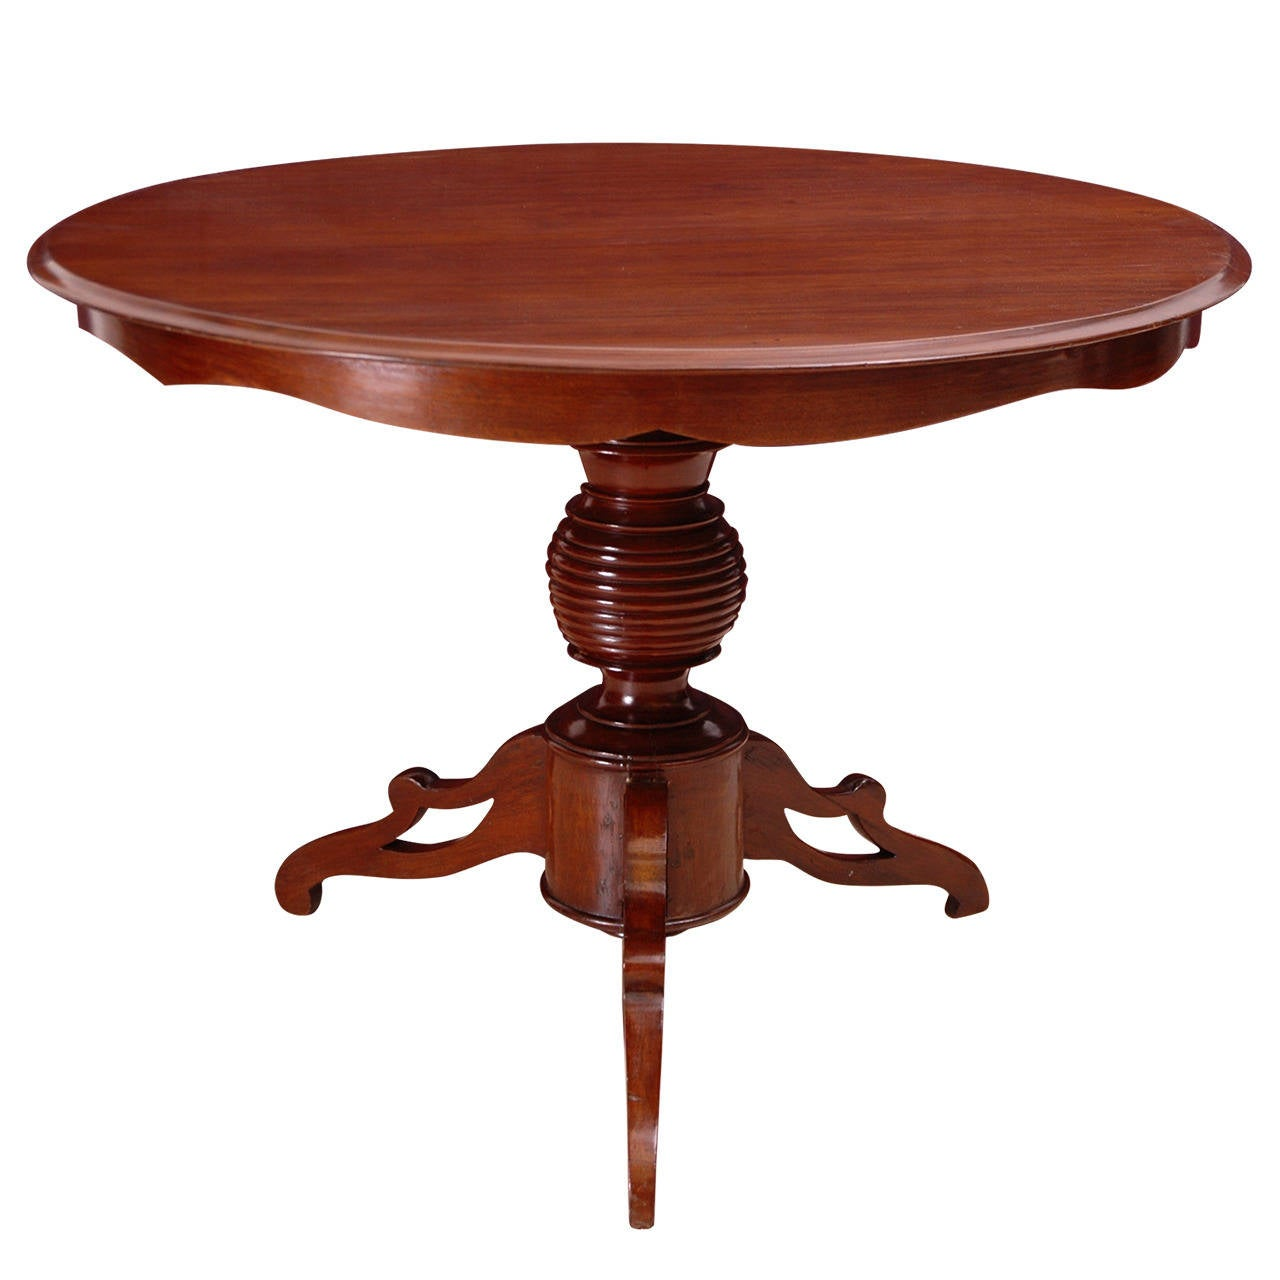 Round Pedestal Table In Mahogany With Tripod Base Dutch